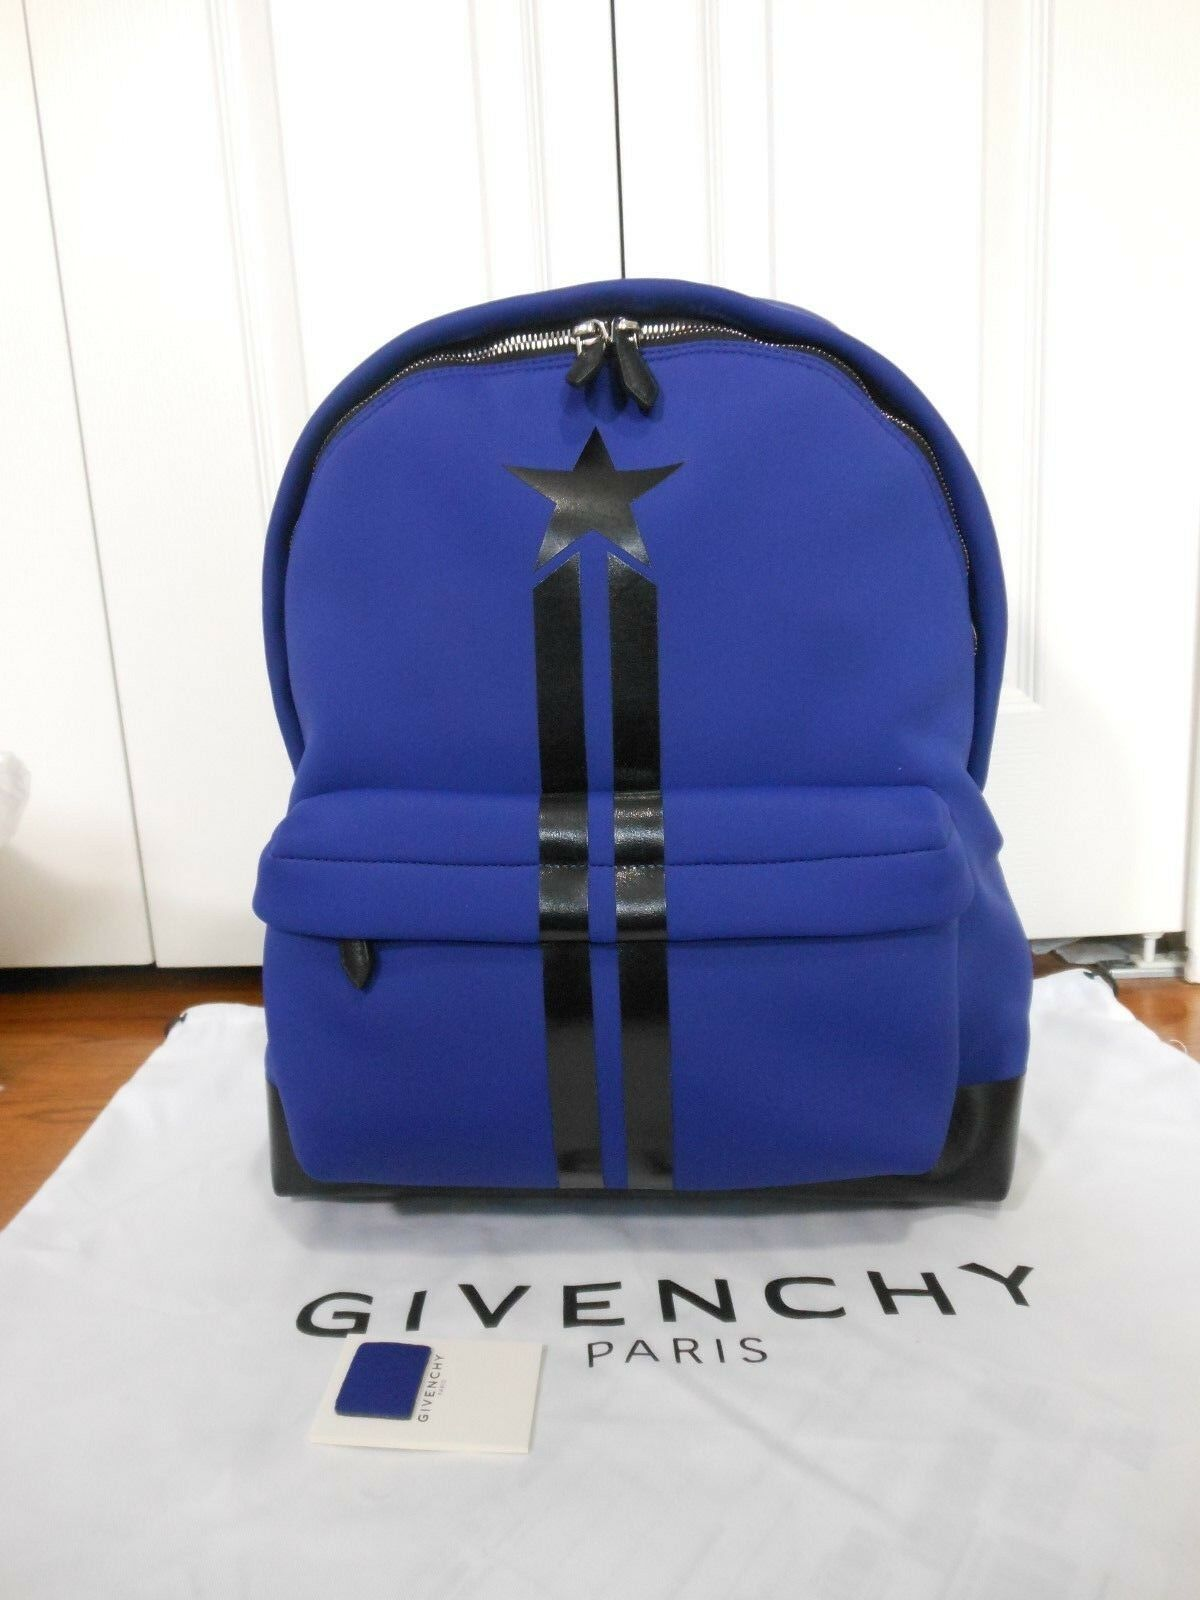 29e6629be30 New Authentic Givenchy $1690 Star & Stripe Neoprene Backpack, Blue